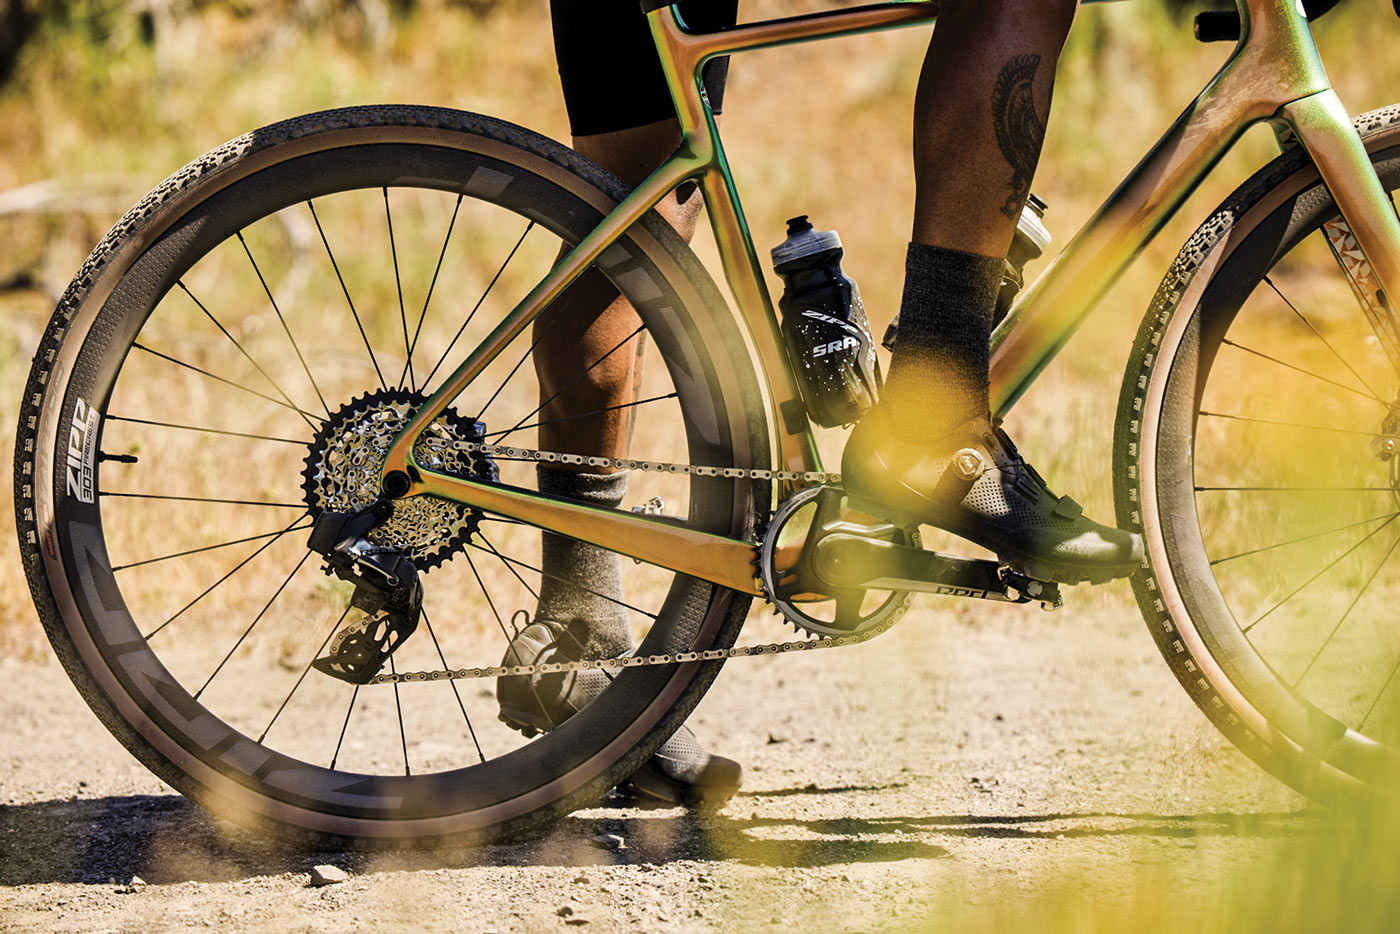 Best women's MTB shoes can be used for gravel riding